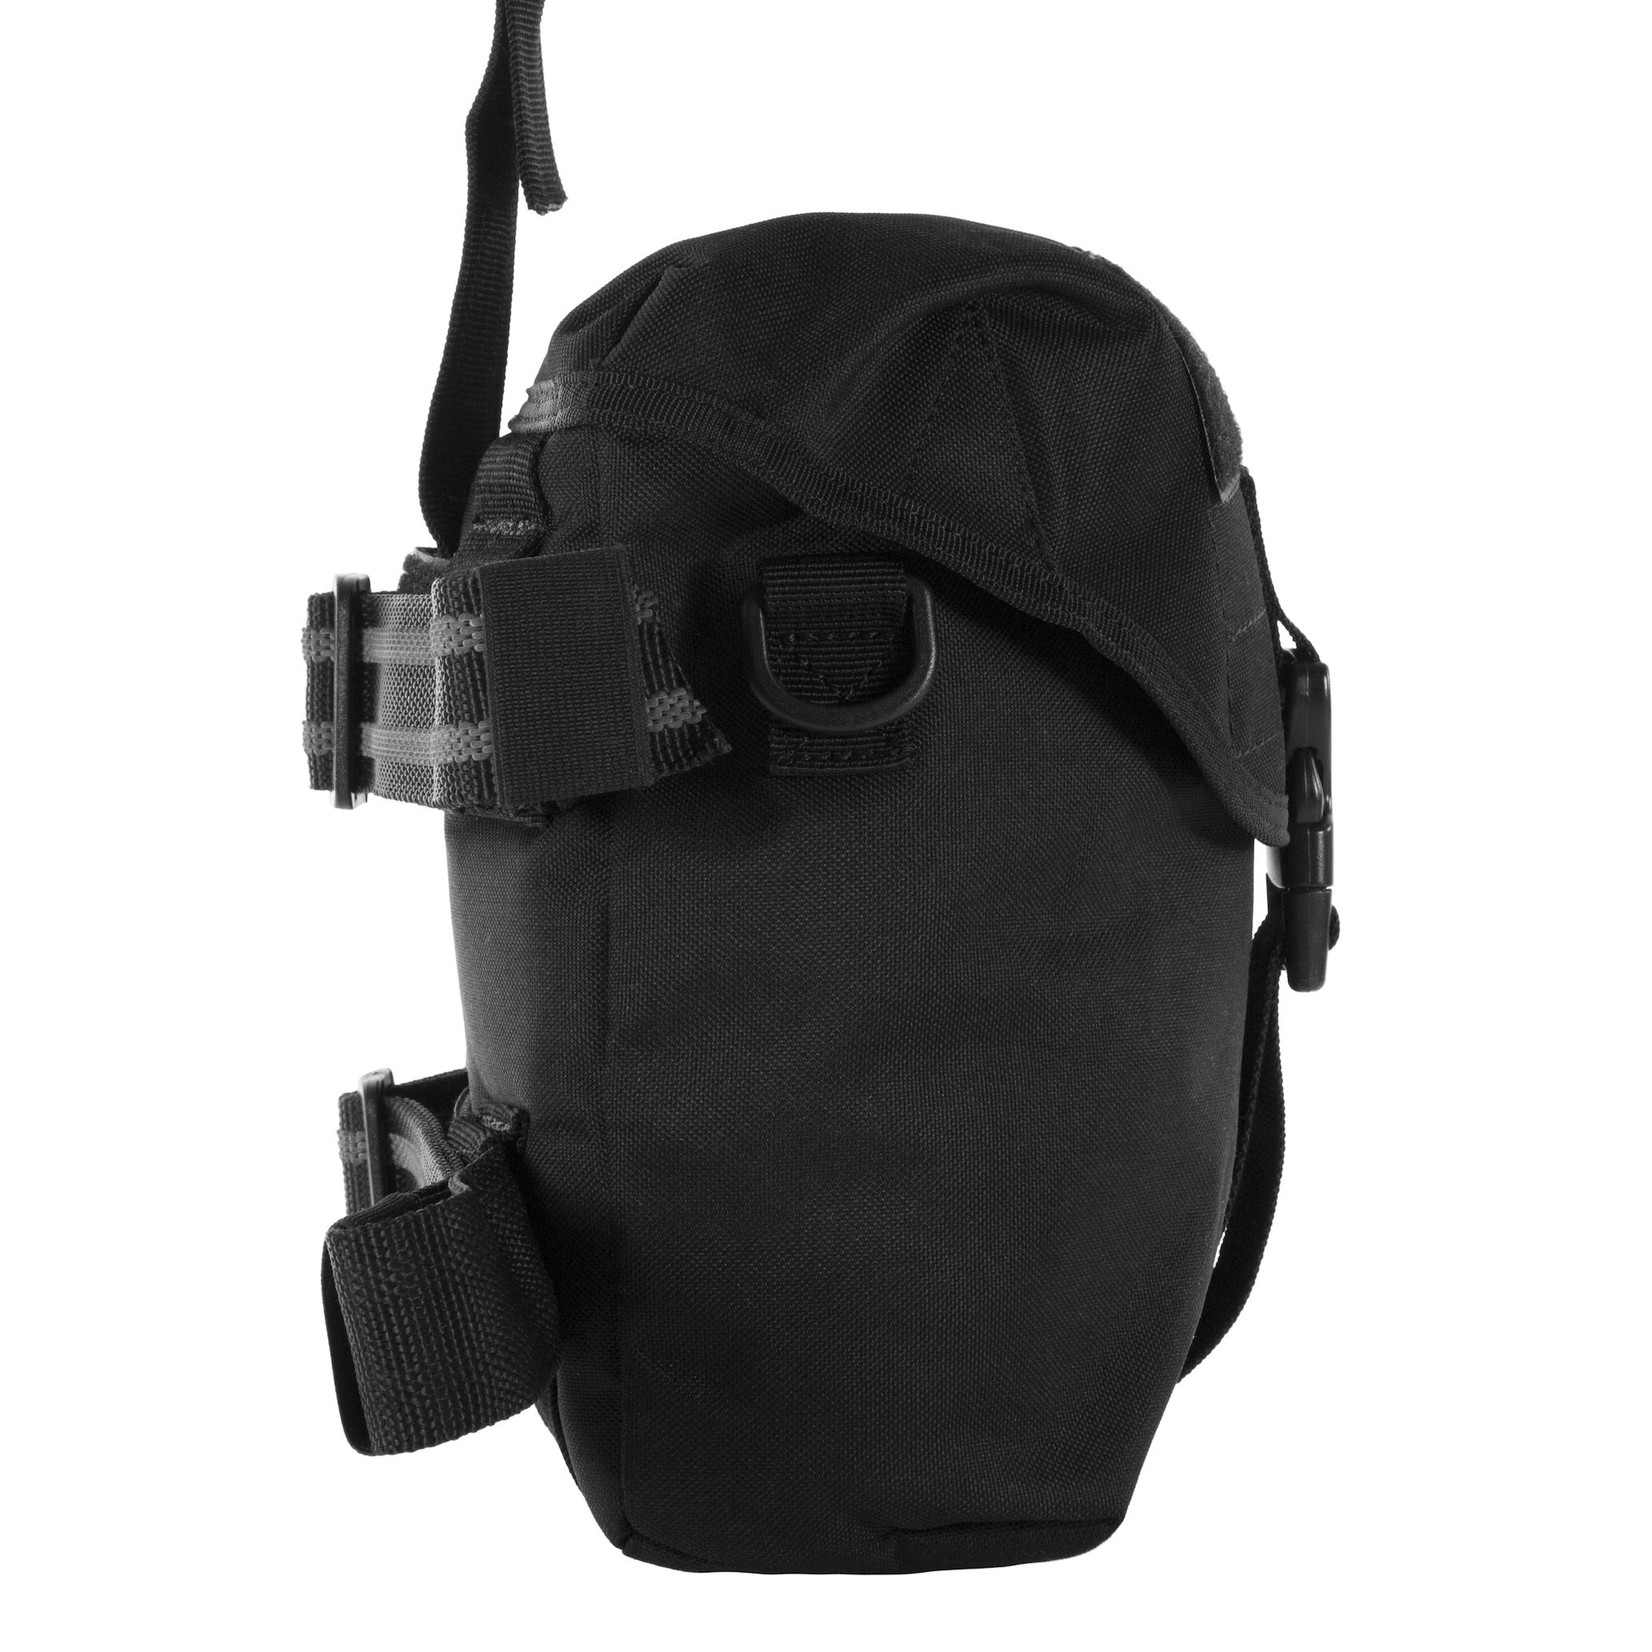 MIRA SAFETY MILITARY POUCH / GAS MASK BAG V2